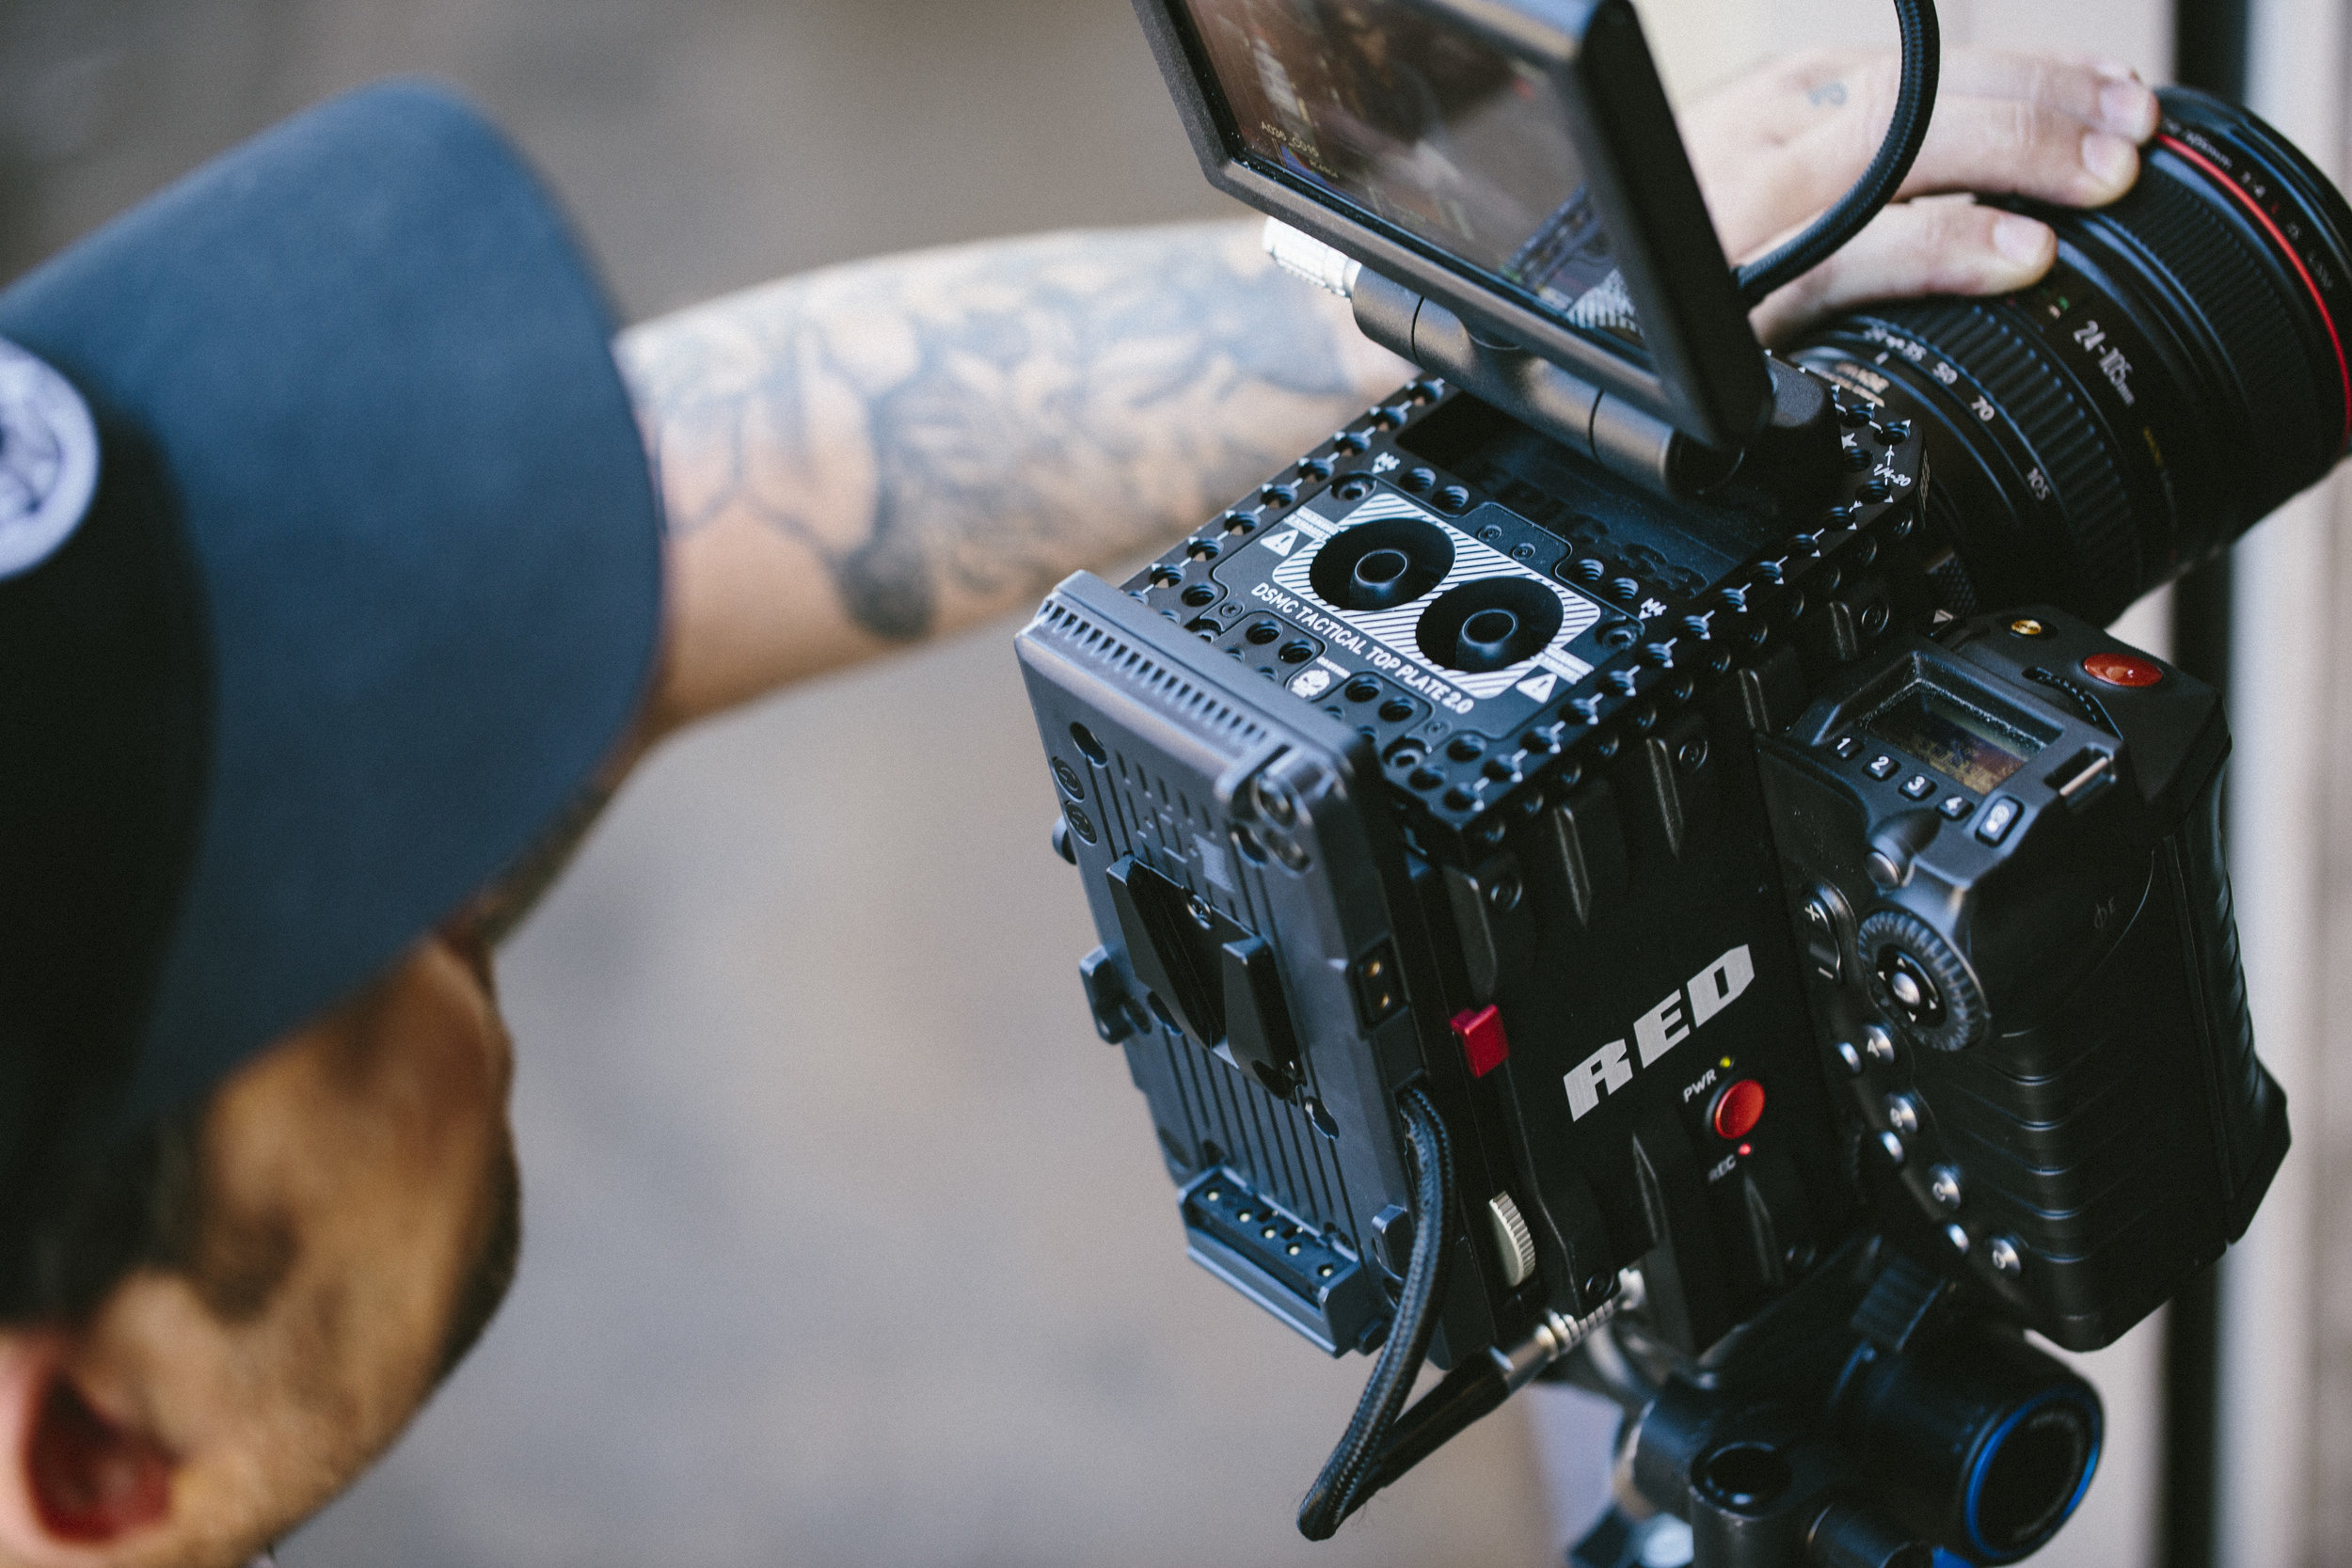 CRAFT - We take our craft seriously. Our job is to tell a great story and make it look amazing. Quality filmmaking is what we do best.